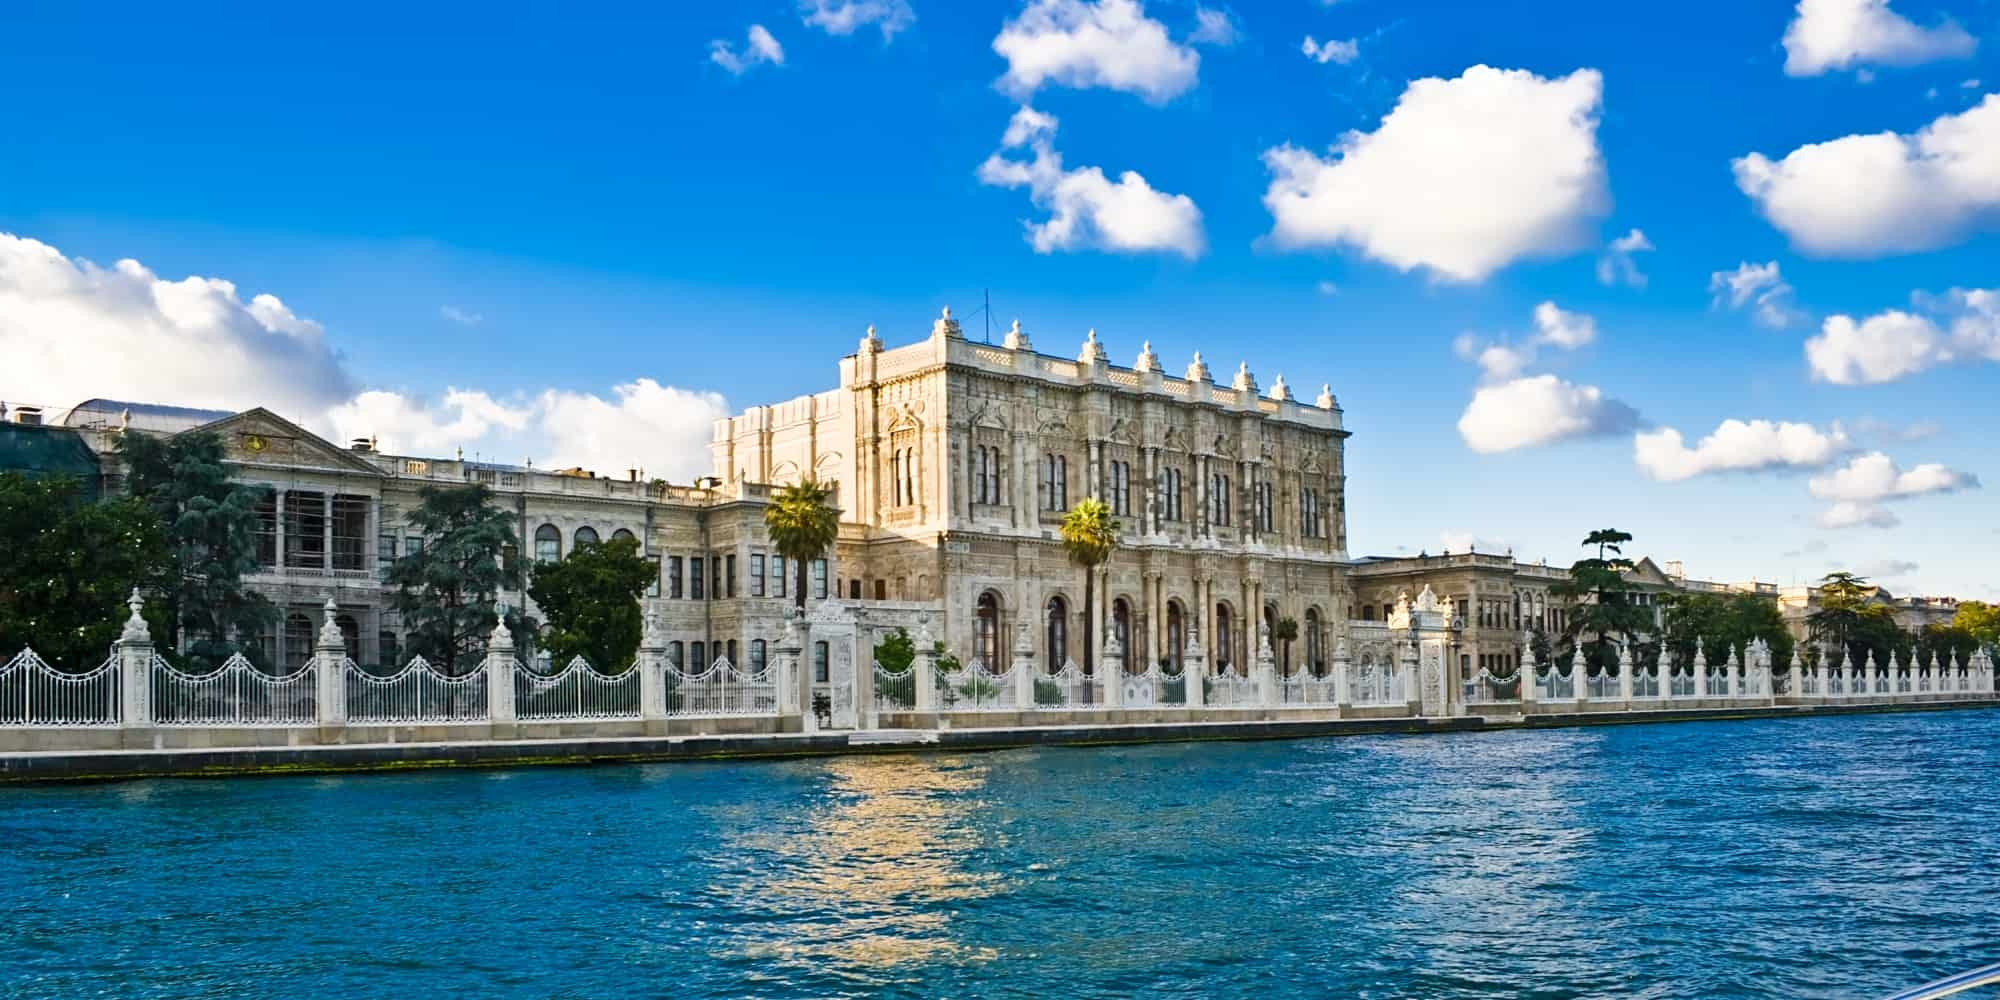 Dolmahaçe Palace seen from the Bosphorus